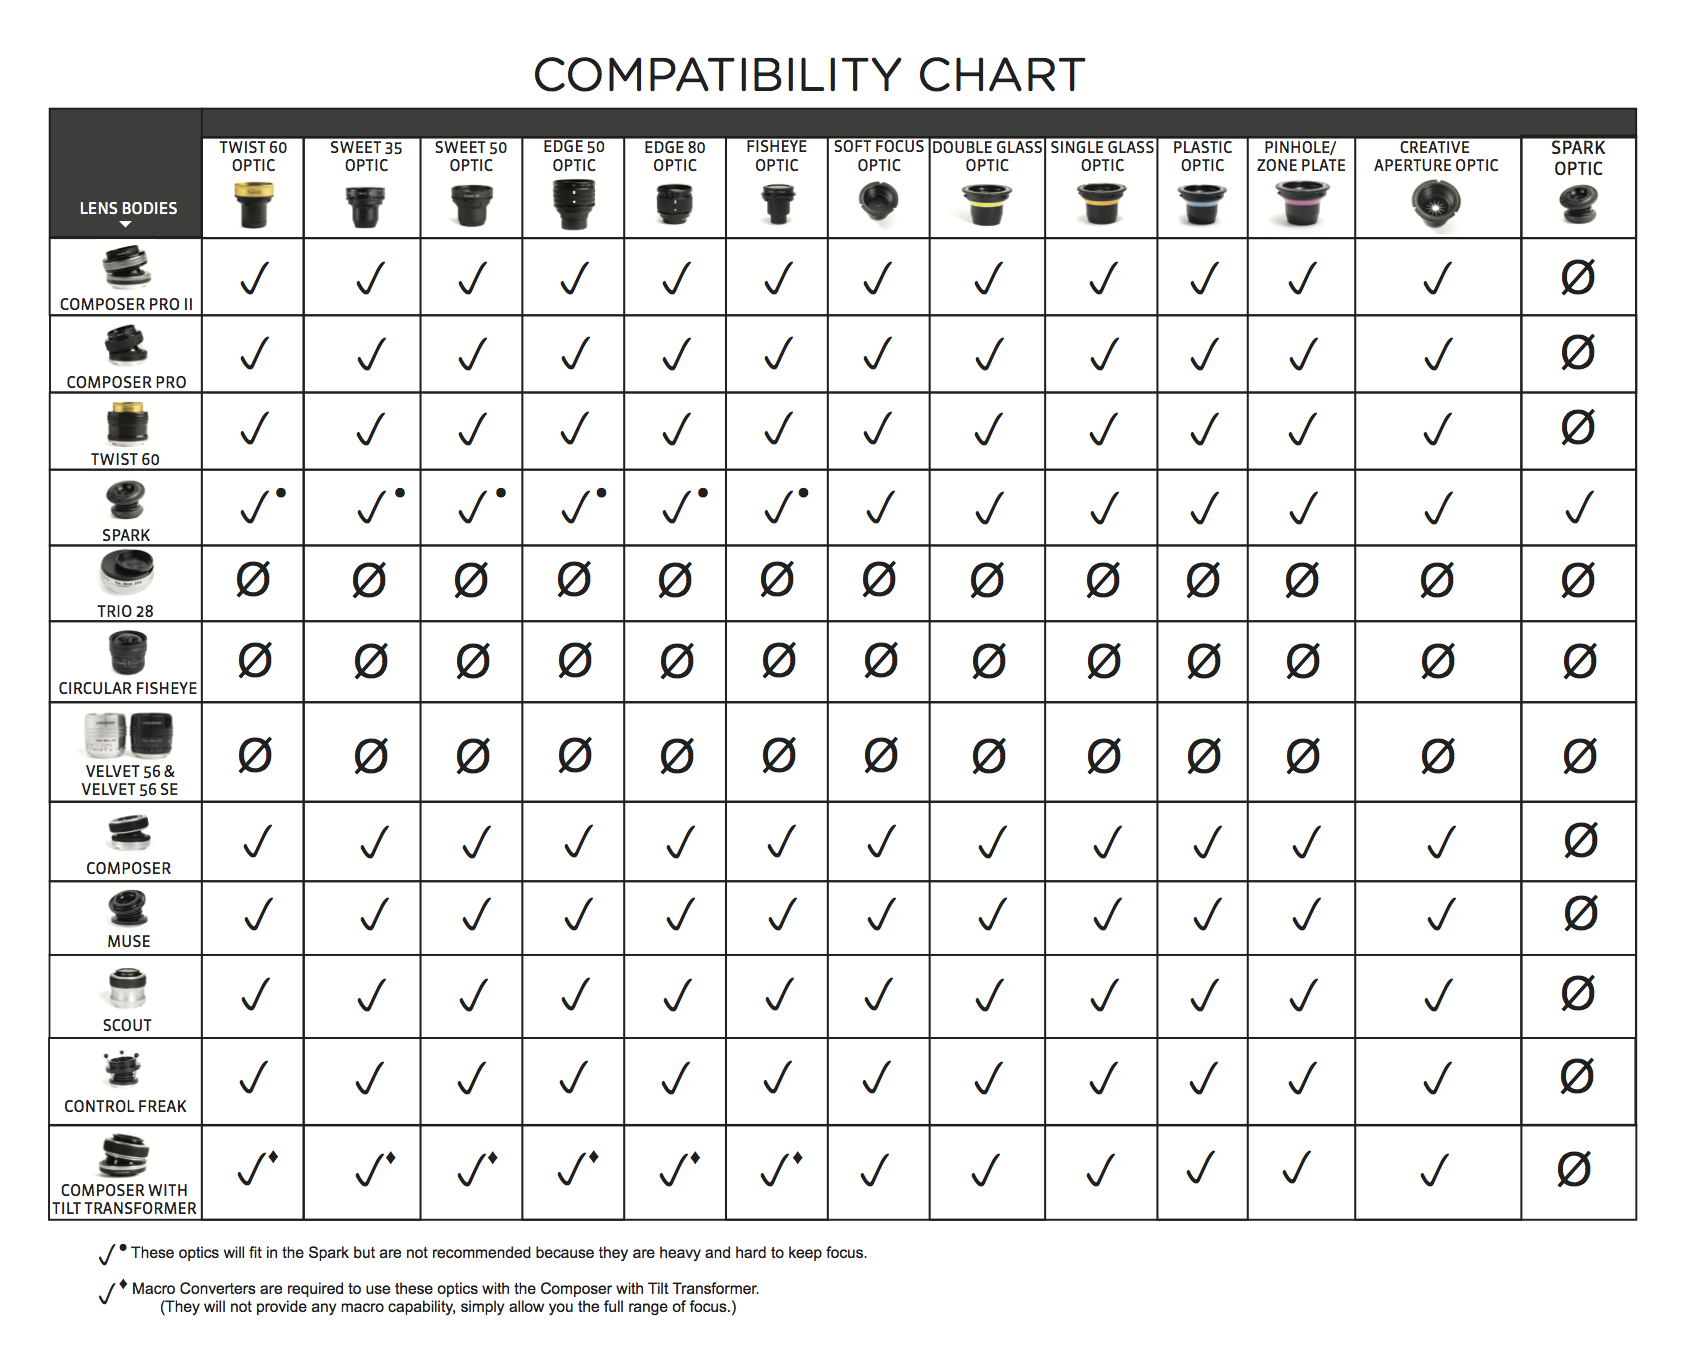 Optic body compatibility chart